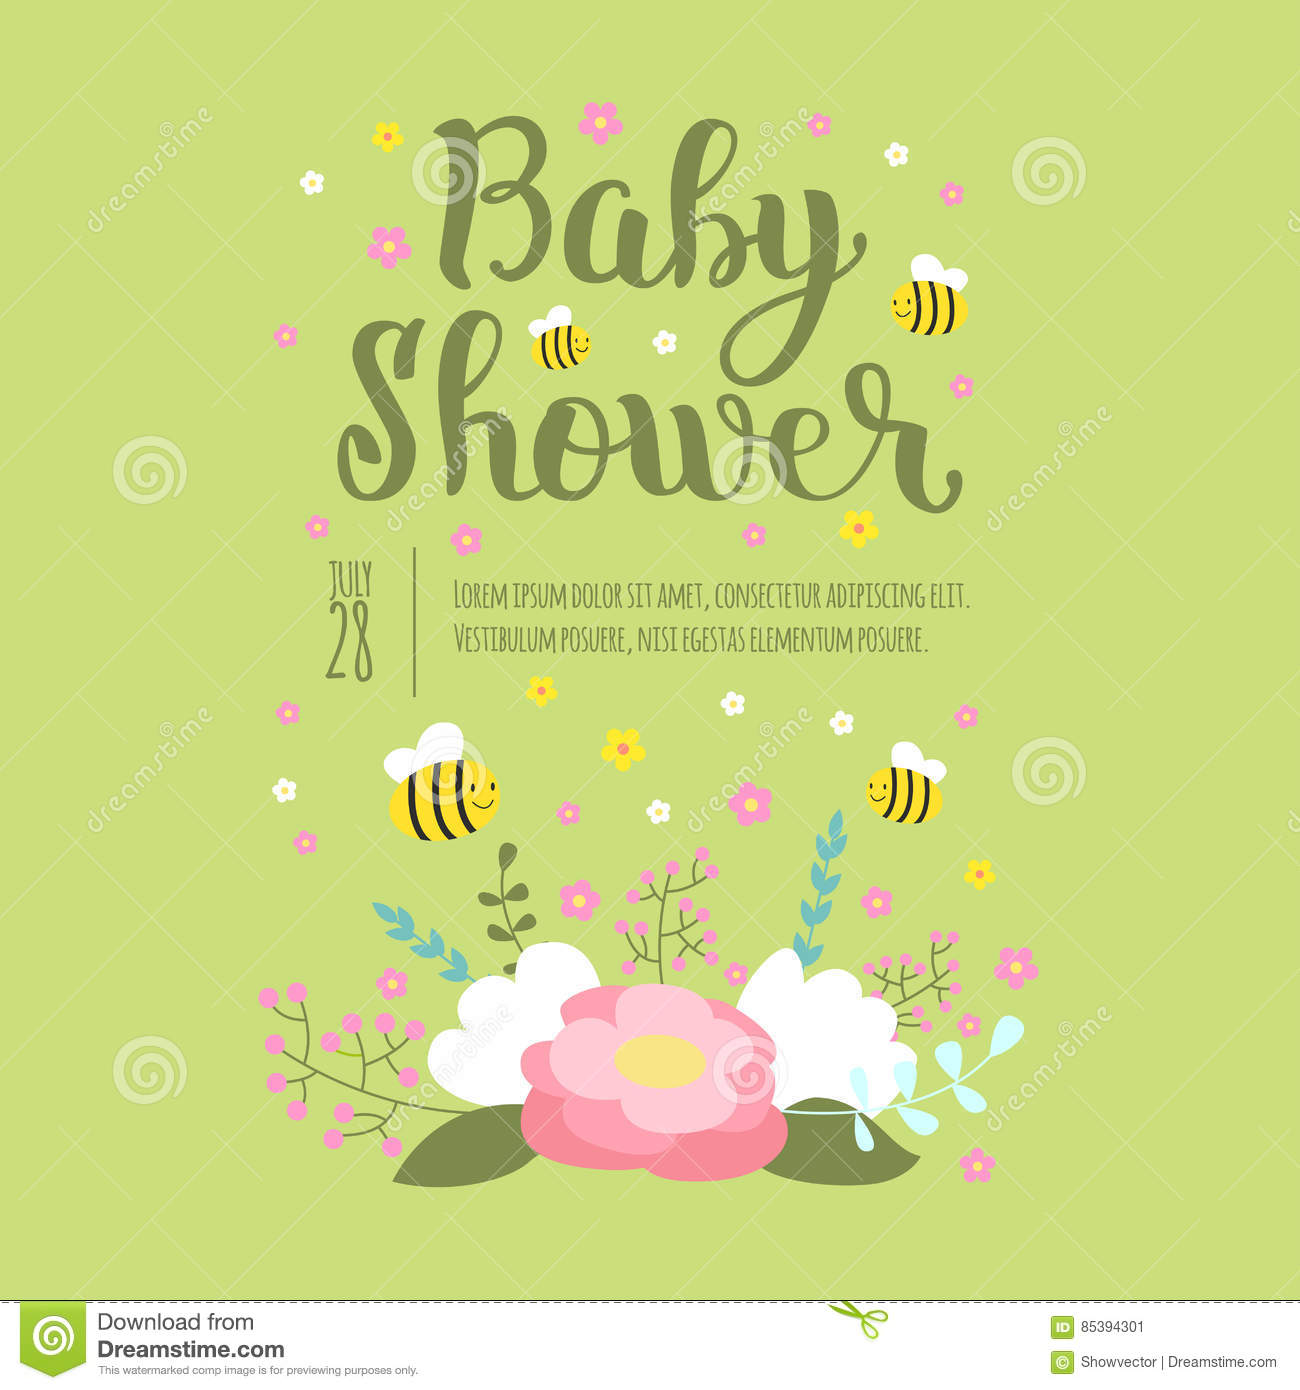 Baby shower invitation vector card stock vector illustration of download baby shower invitation vector card stock vector illustration of baby childhood stopboris Image collections